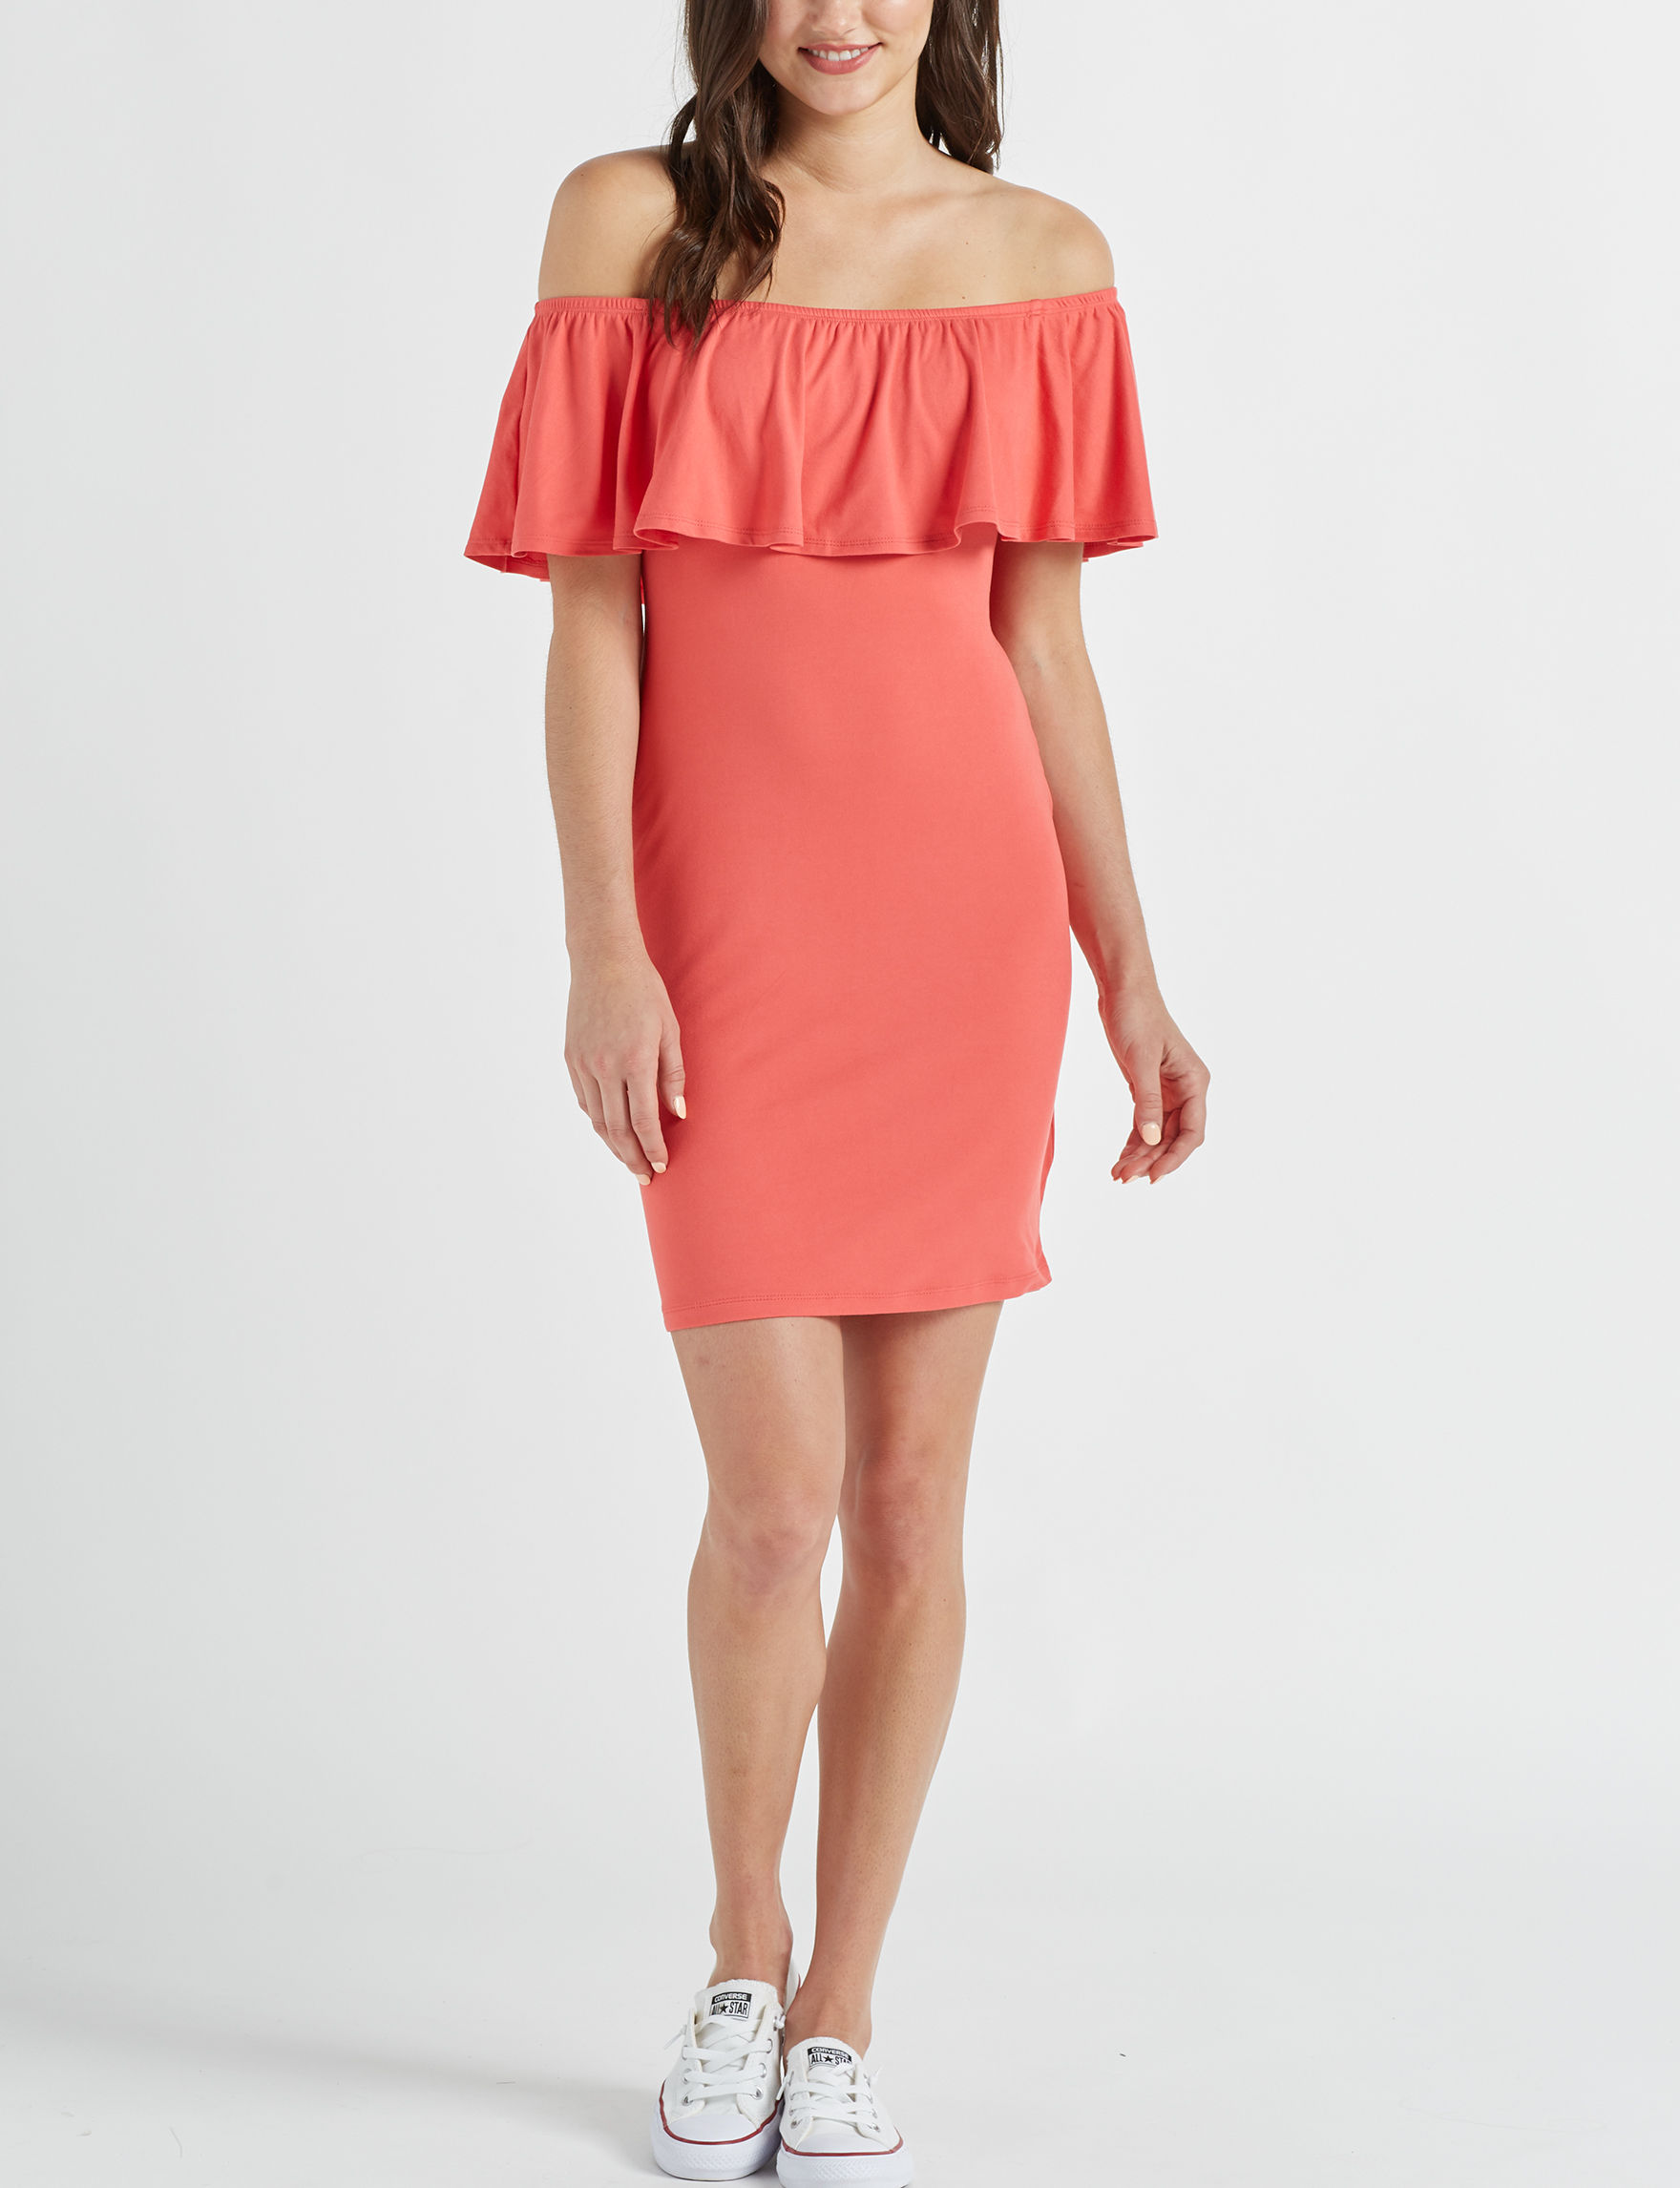 Wishful Park Coral Cocktail & Party Everyday & Casual Bodycon Dresses